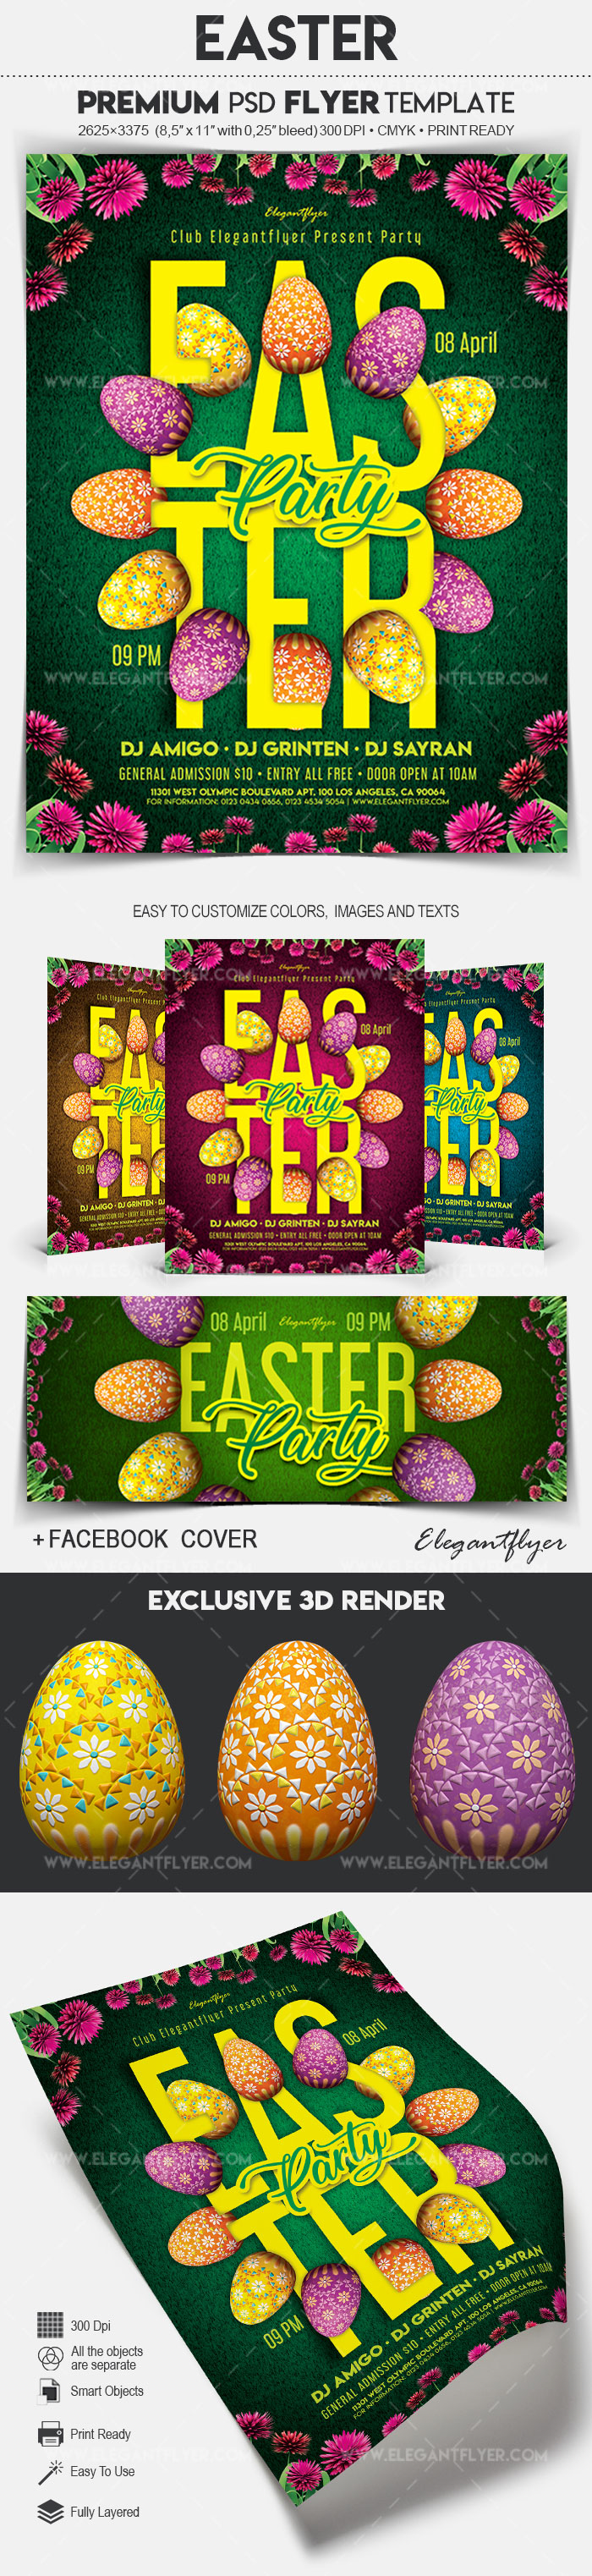 Easter – Flyer PSD Template + Facebook Cover